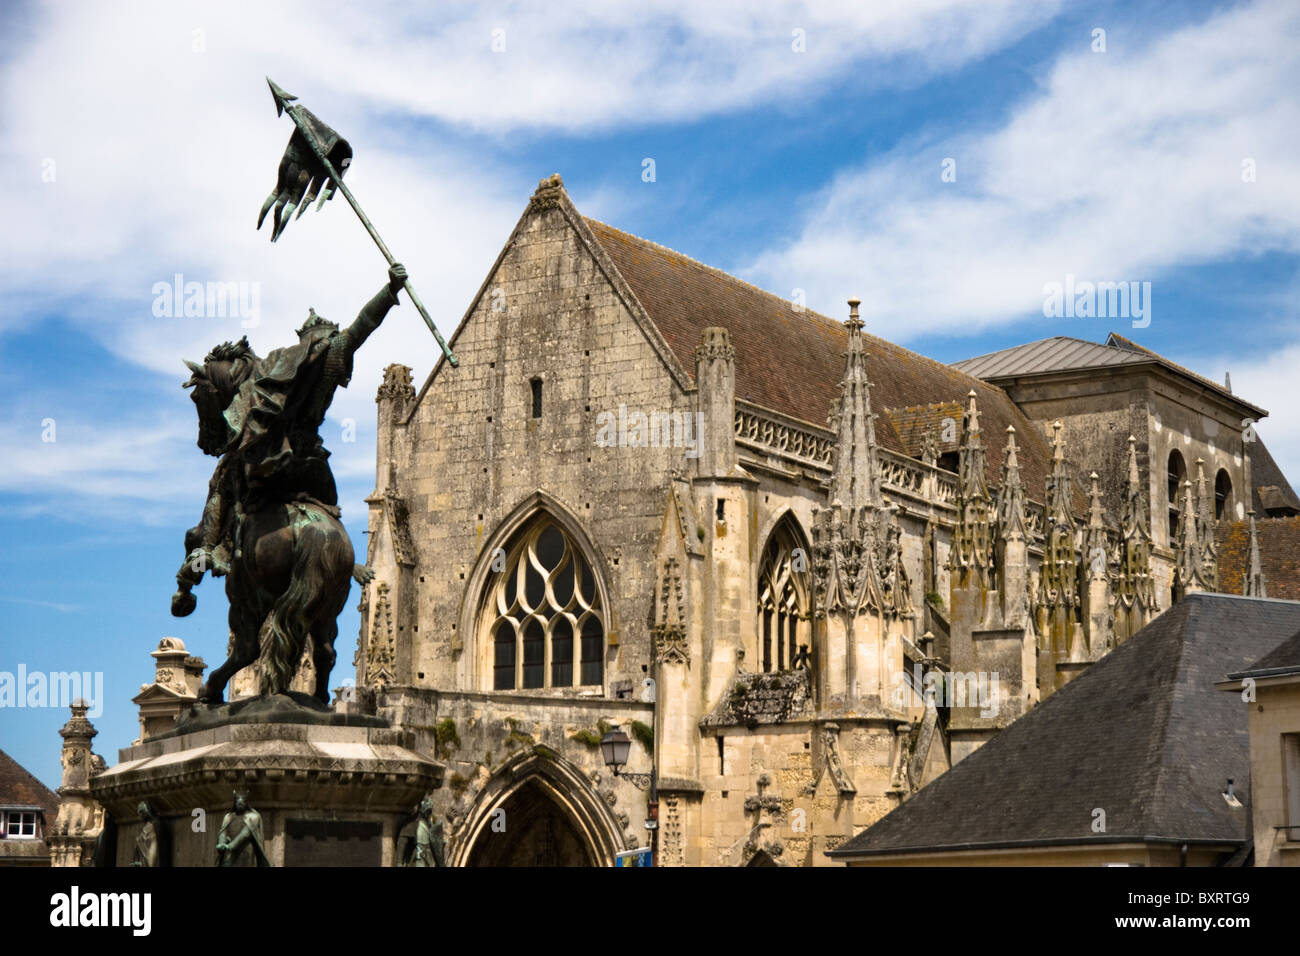 France, Normandie, Pays d'Auge, Falaise's Church and William the Conqueror's Statue Stock Photo